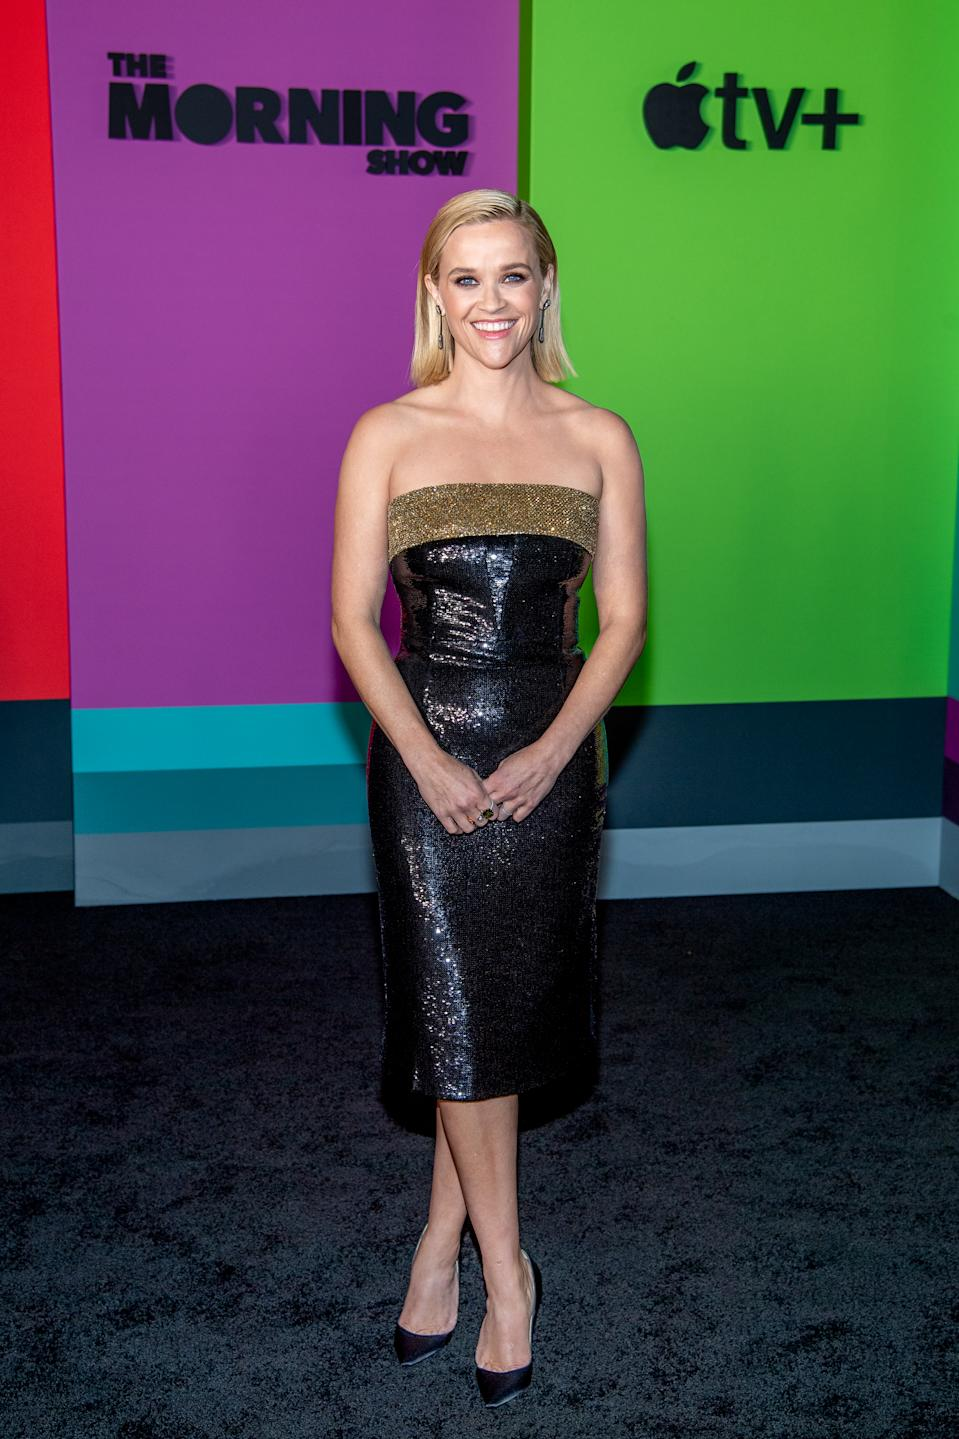 """NEW YORK, NEW YORK - OCTOBER 28: Actress Reese Witherspoon attends Apple TV+'s """"The Morning Show"""" world premiere at David Geffen Hall on October 28, 2019 in New York City. (Photo by Roy Rochlin/WireImage)"""